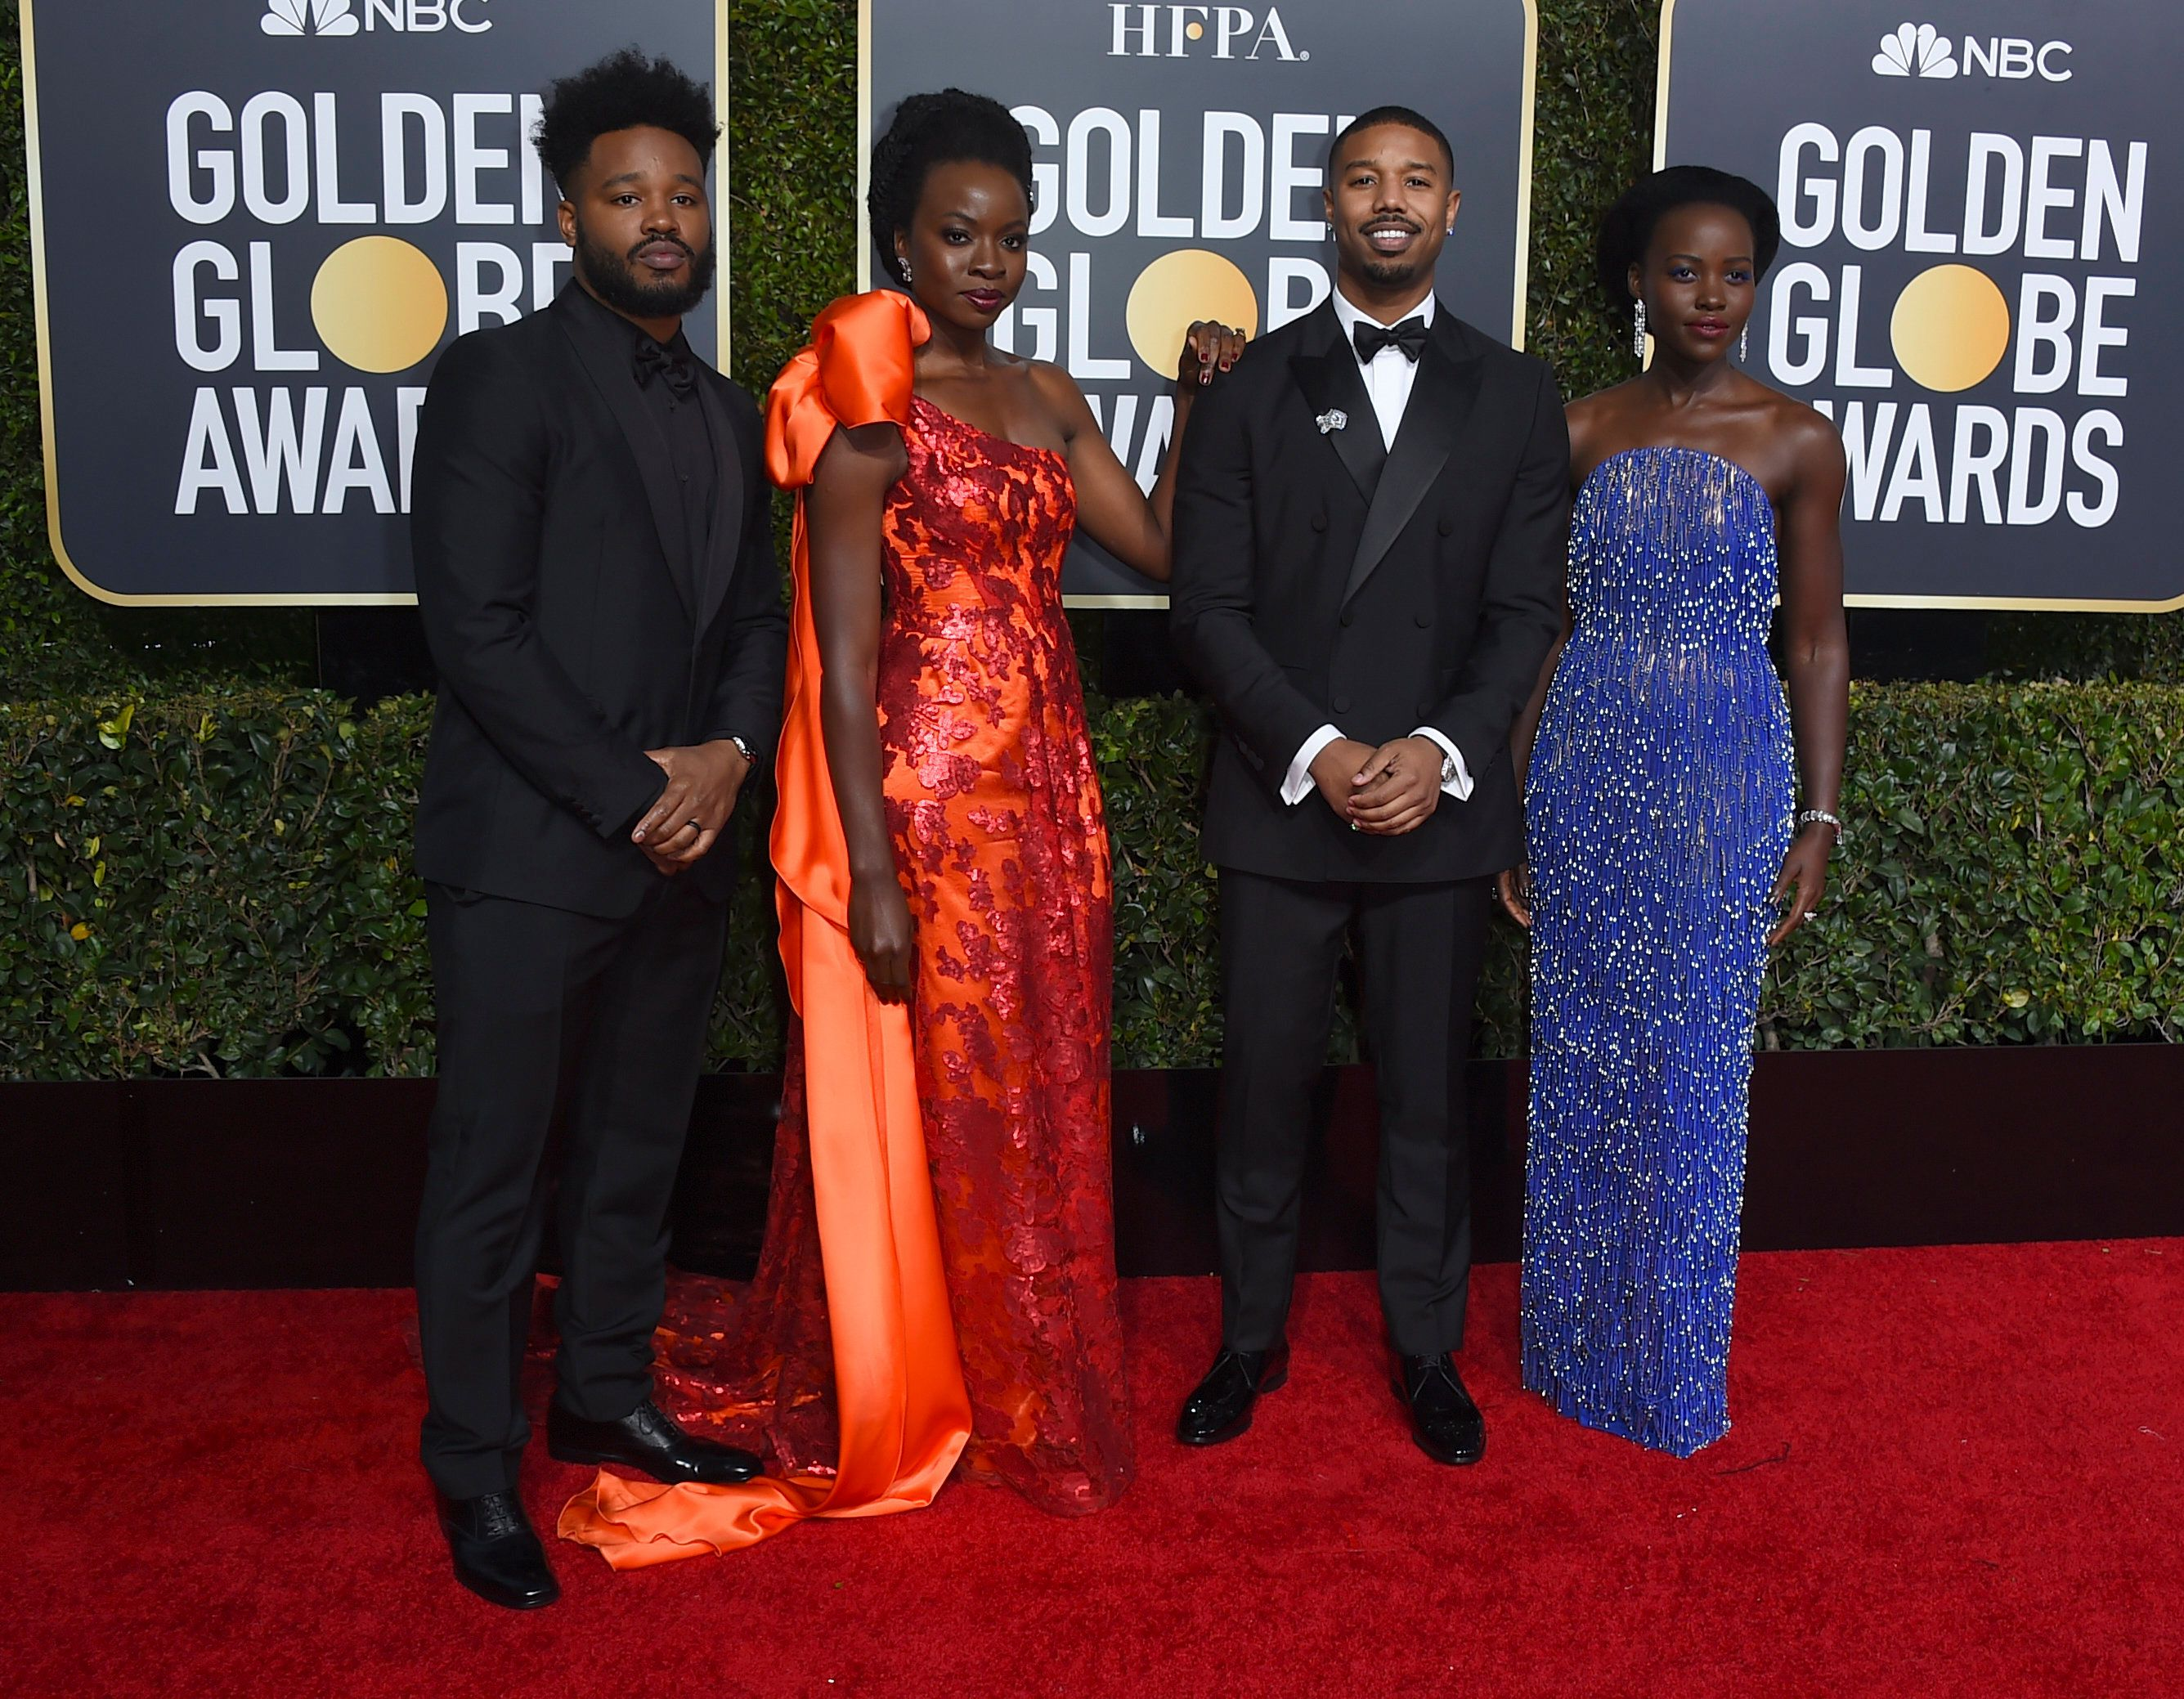 Ryan Coogler, from left, Danai Gurira, Michael B. Jordan and Lupita Nyong'o arrive at the 76th annual Golden Globe Awards at the Beverly Hilton Hotel on Sunday, Jan. 6, 2019, in Beverly Hills, Calif. (Photo by Jordan Strauss/Invision/AP)